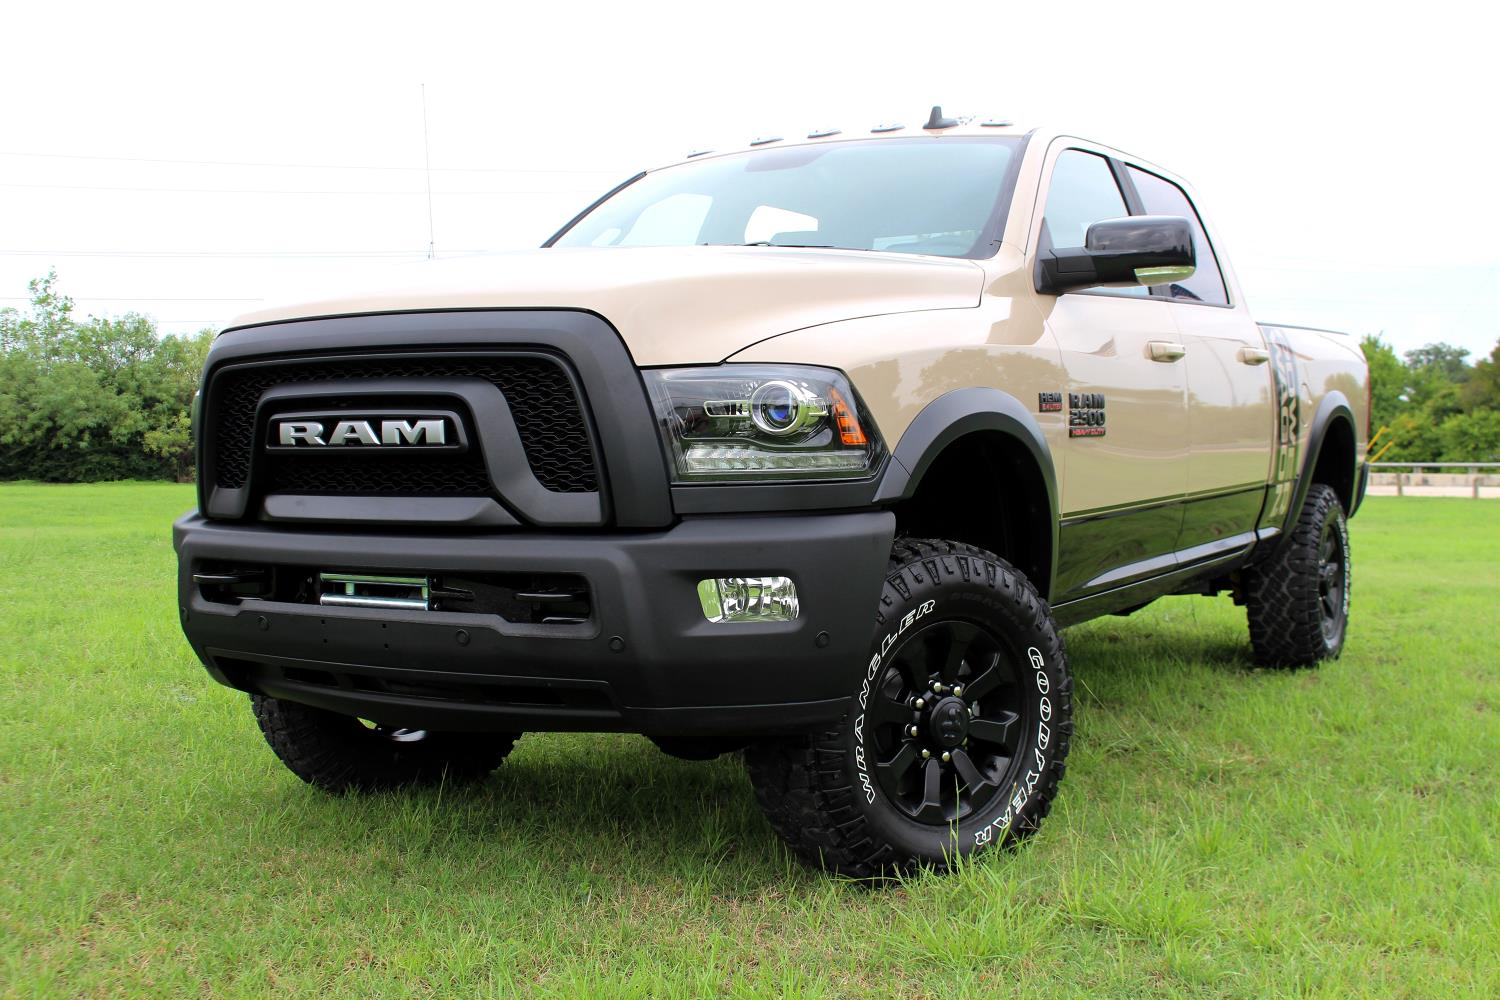 Official 2018 Ram 2500 Power Wagon Mojave Sand Edition 1964 Dodge Crew Cab What You Get With The Is Exclusivity Truck Limited To 1500 Units And It Comes Some Special Features